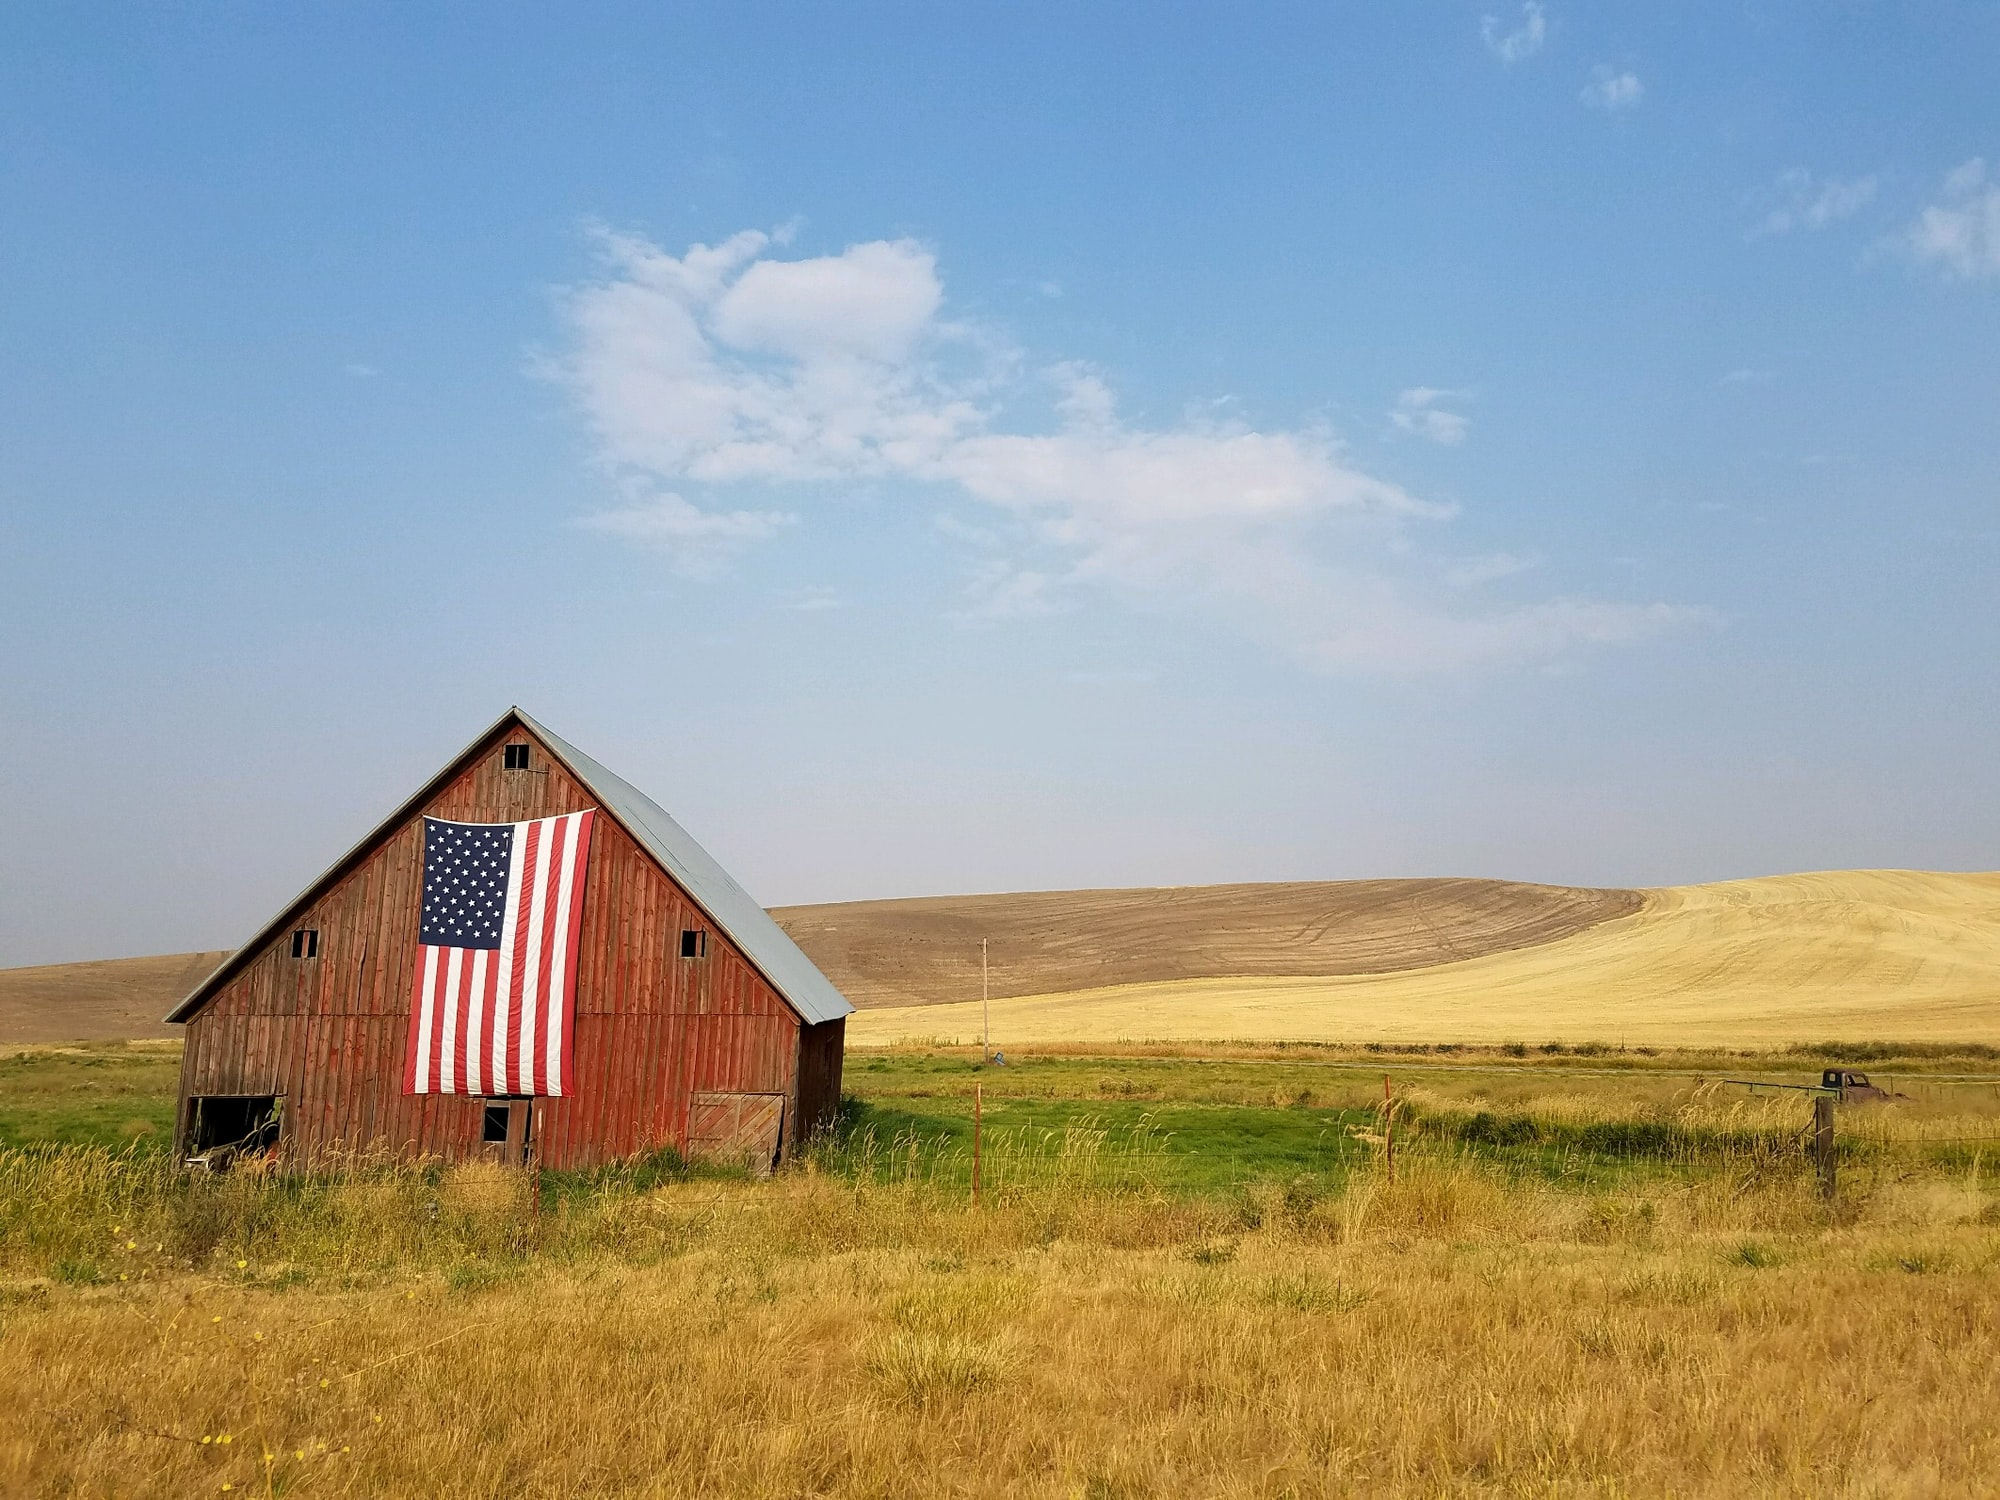 Biden administration should view rural broadband as a health care issue